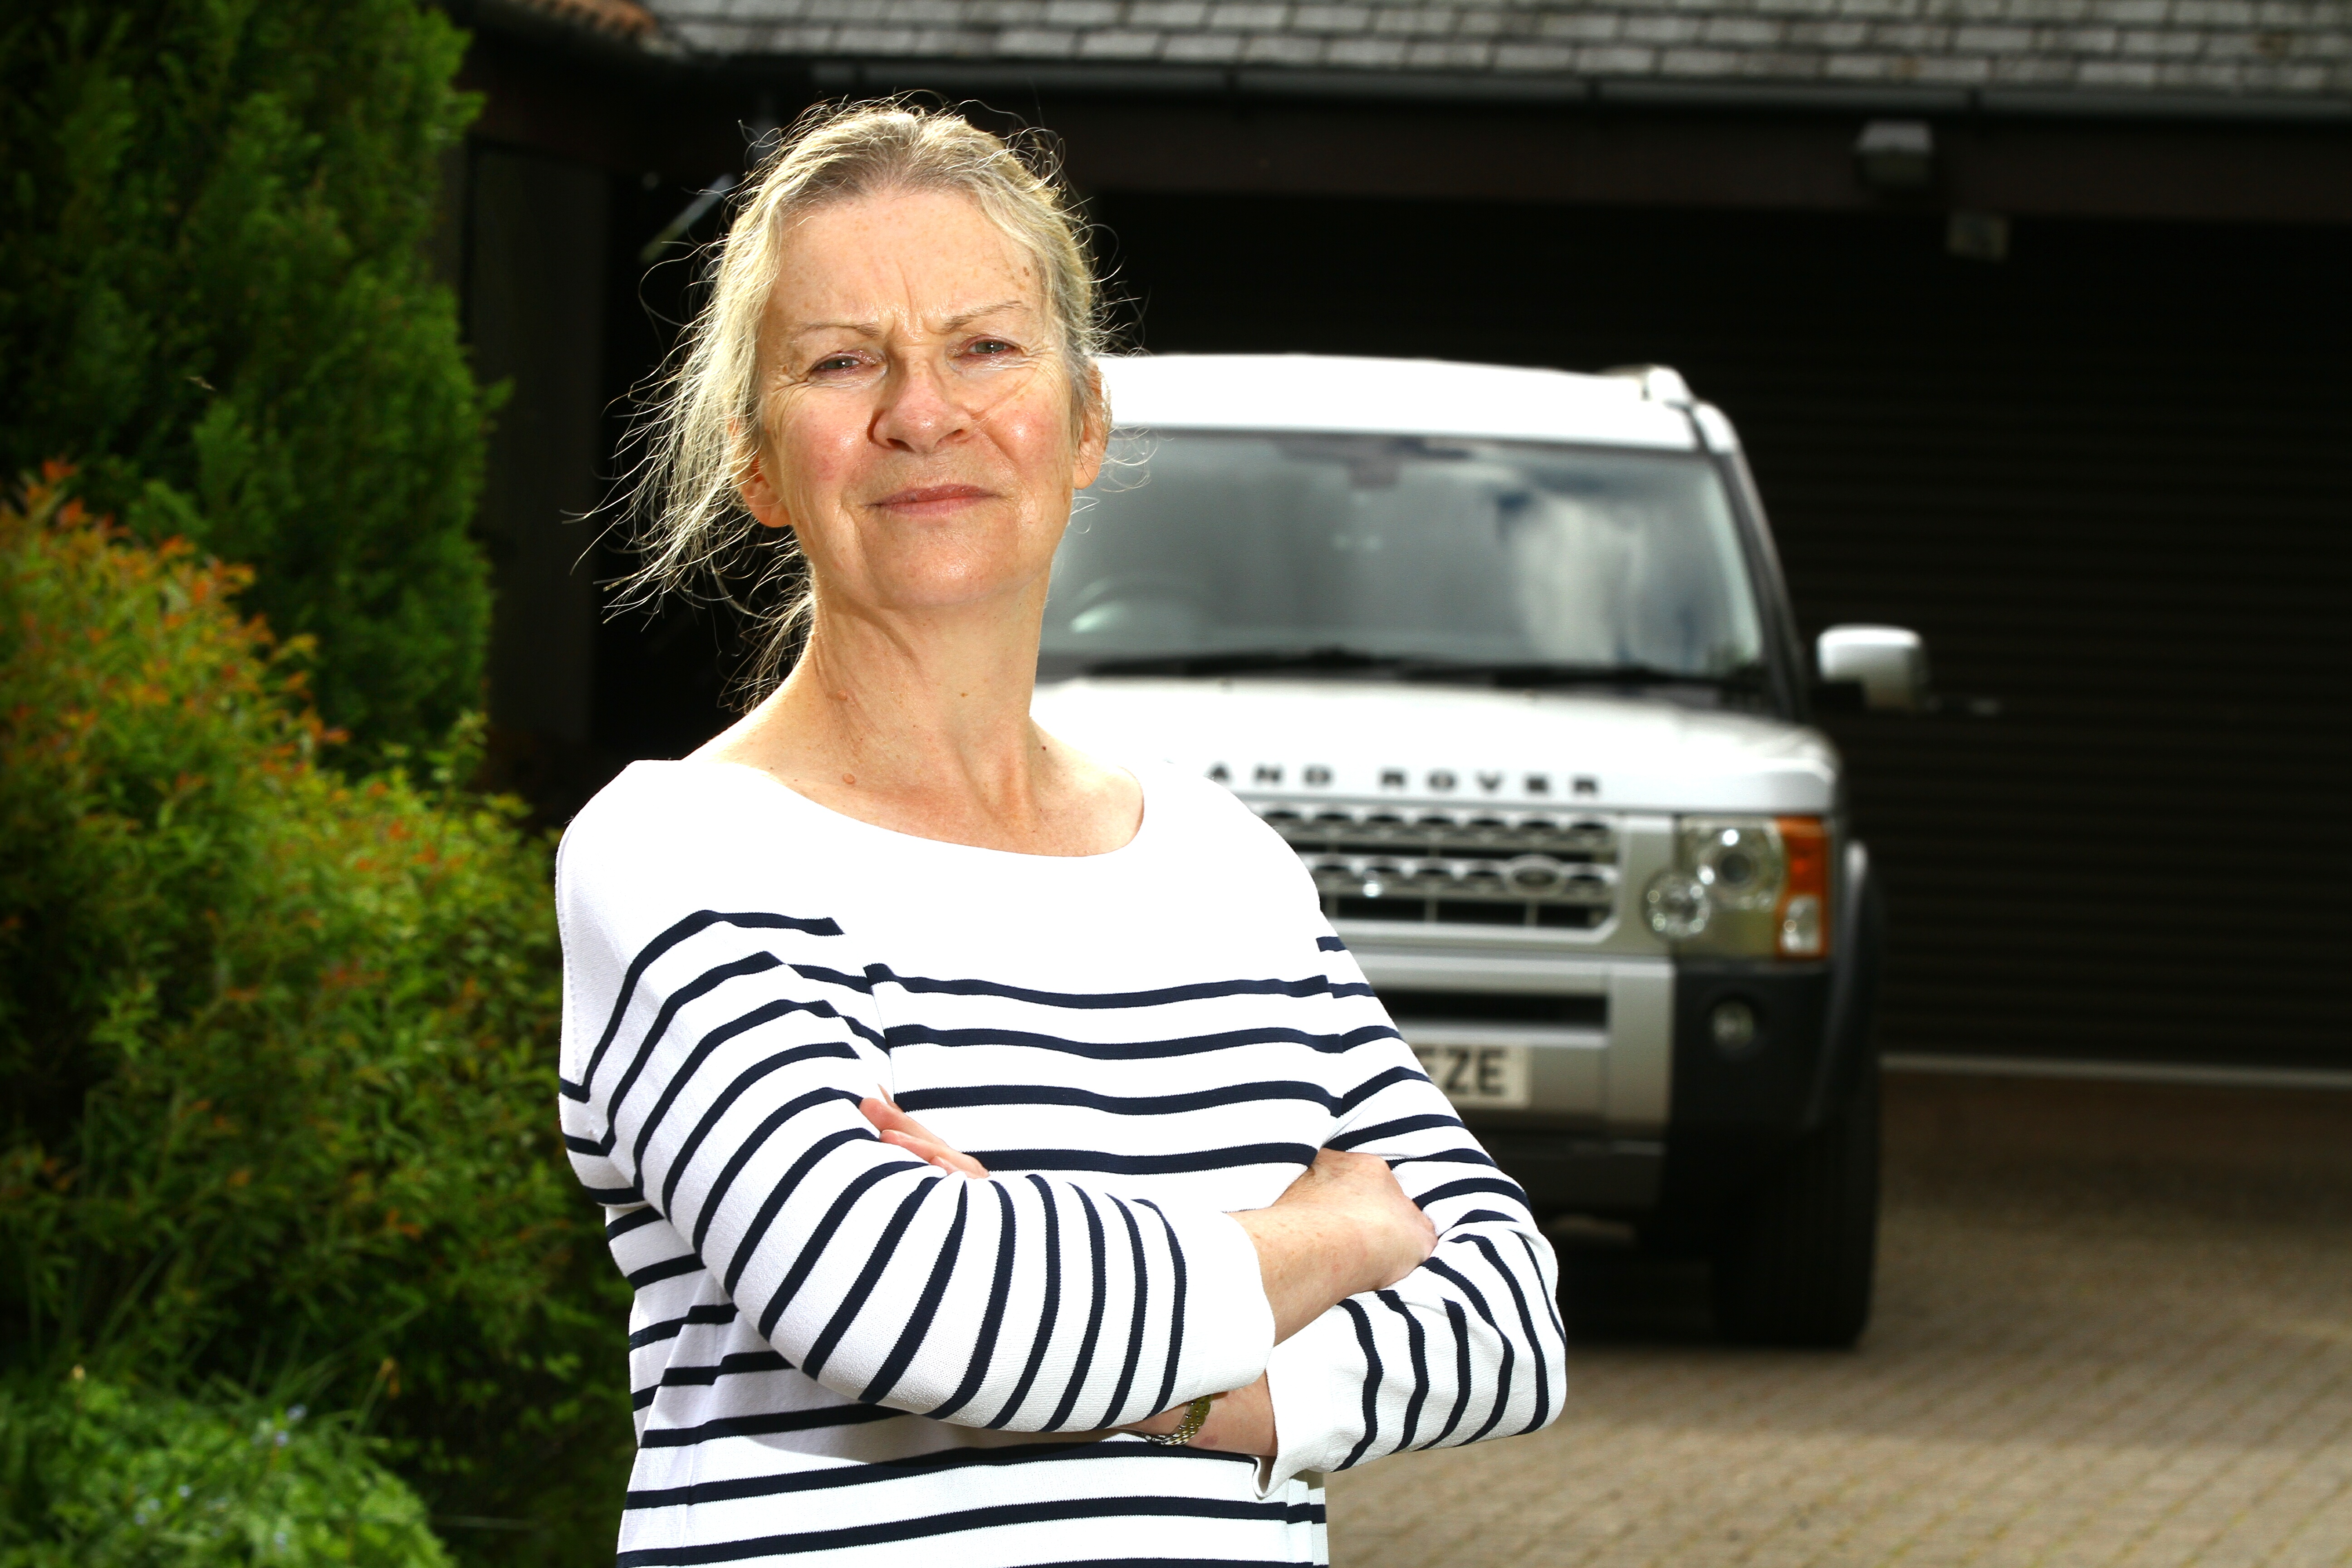 Jennifer Ross has hit out at reckless van drivers following the RTA on the A91